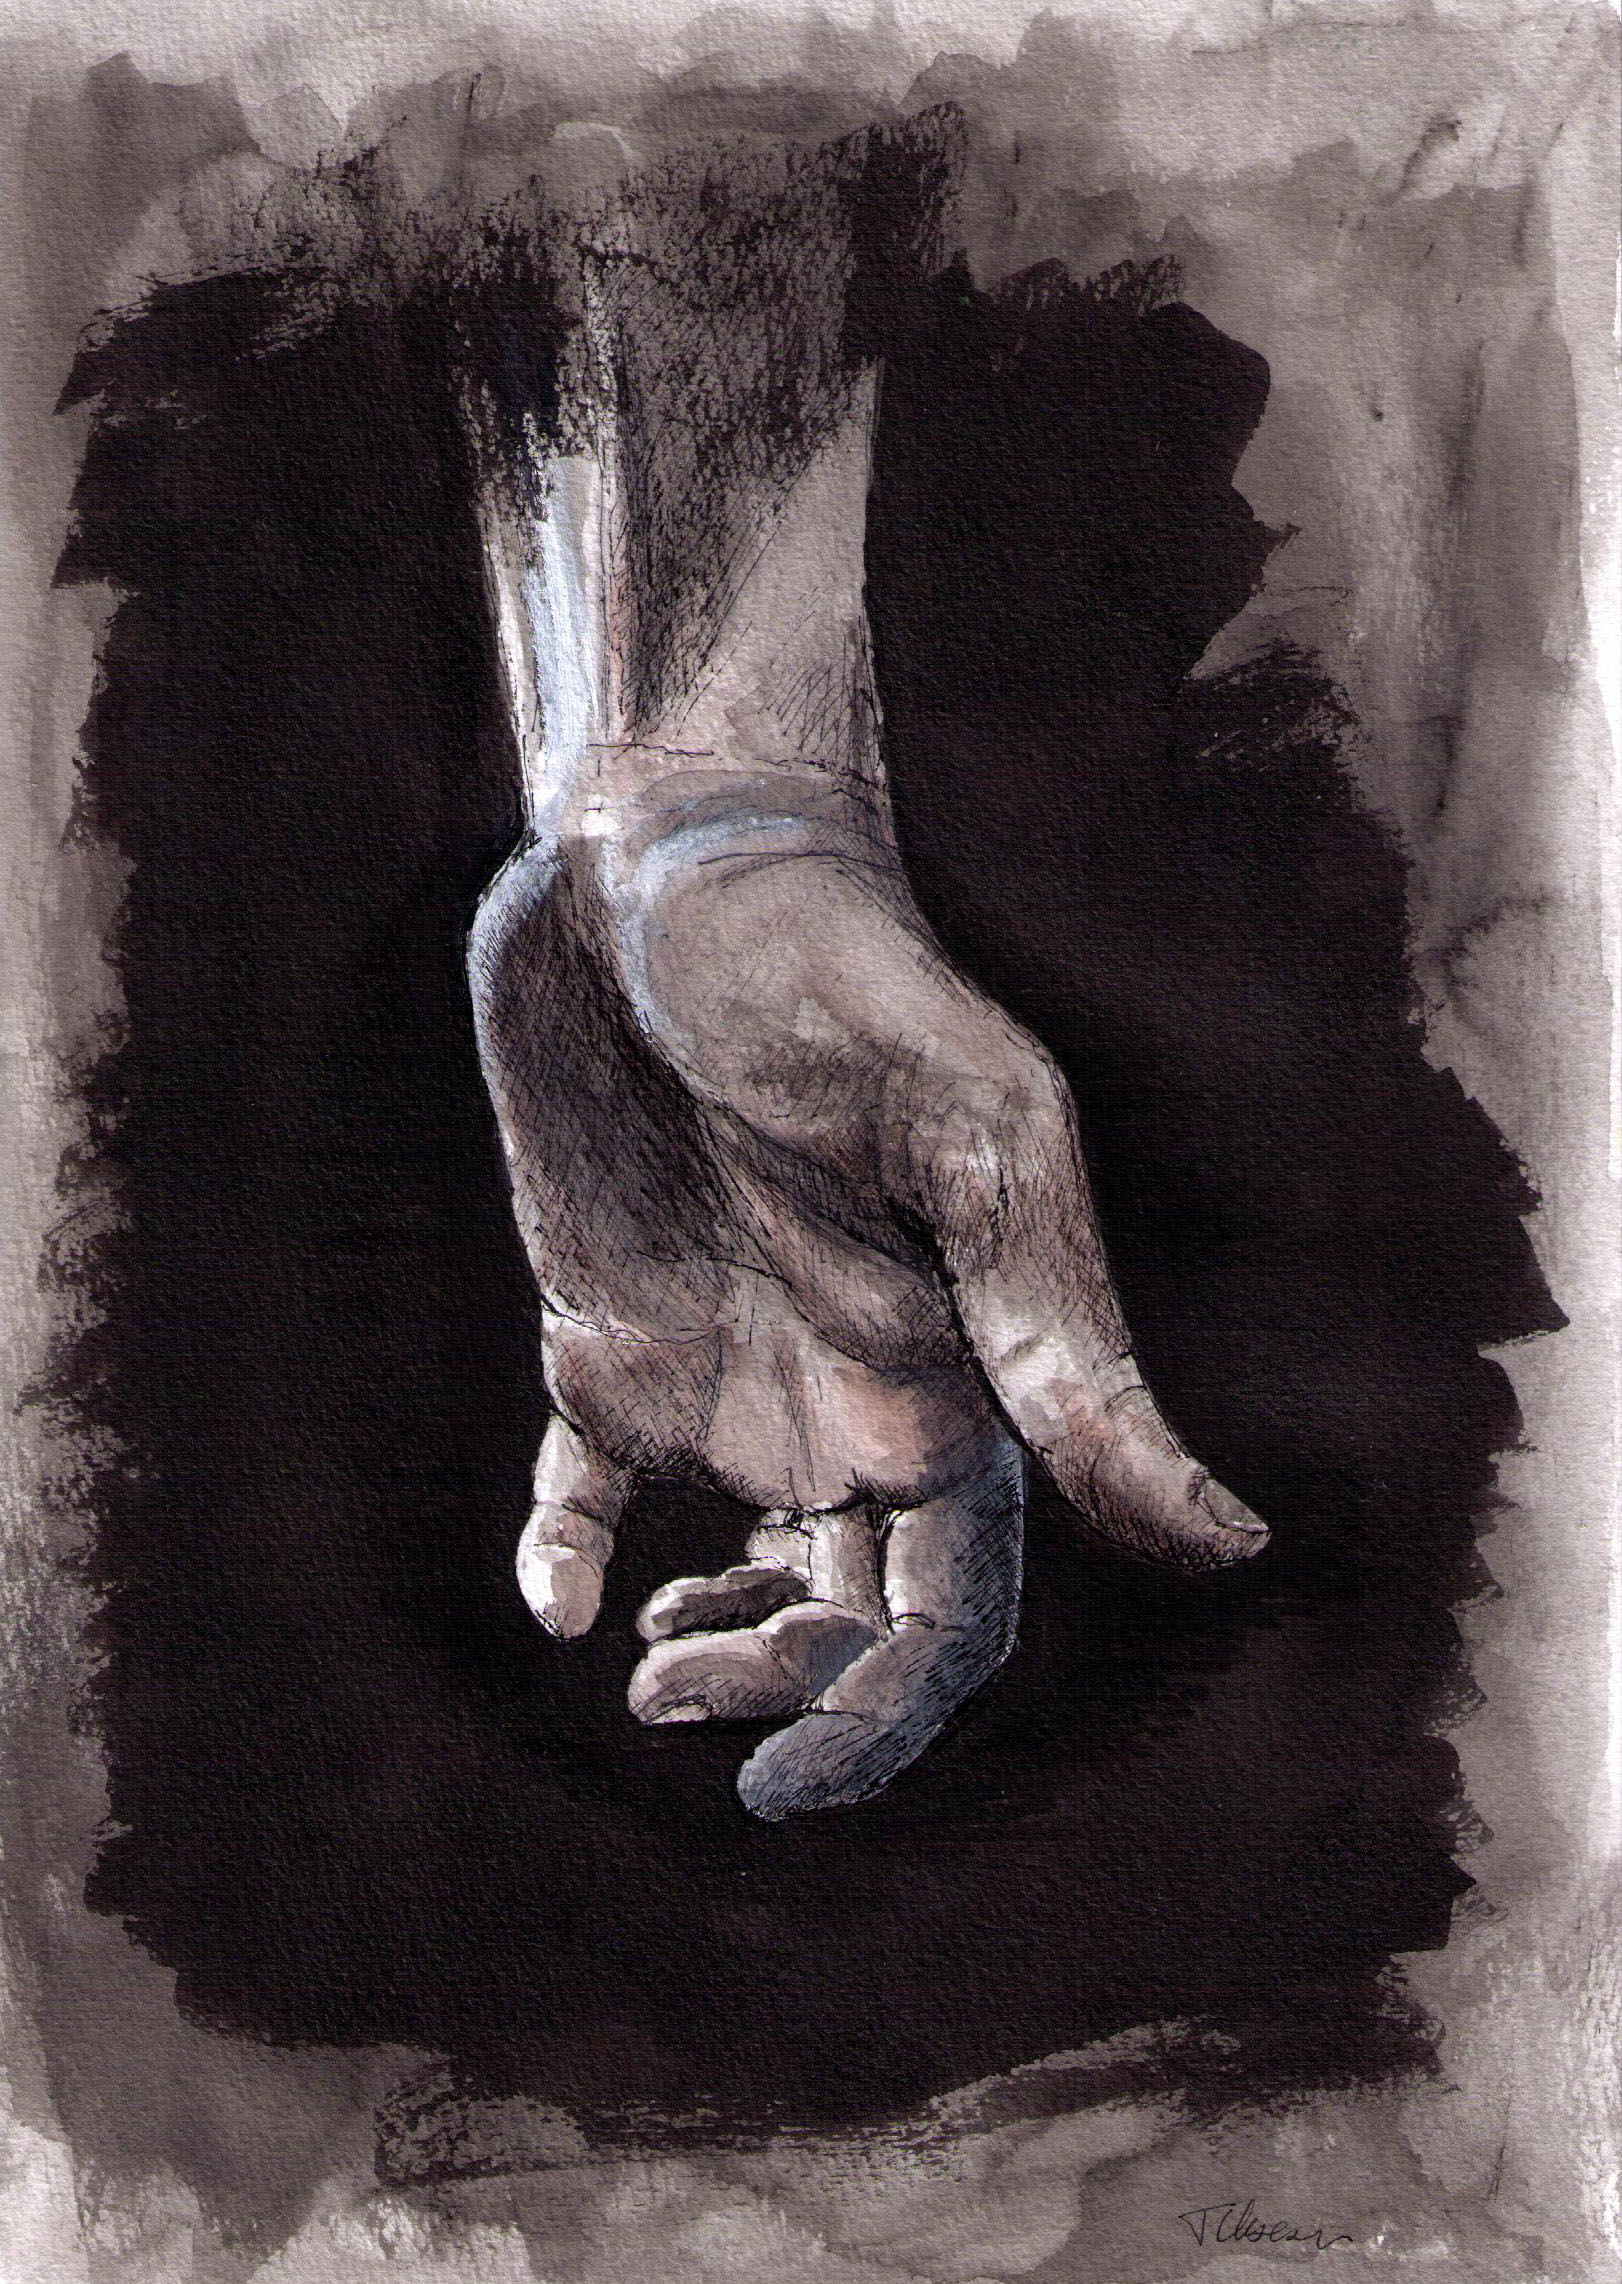 Drawing of a hand in mixed media